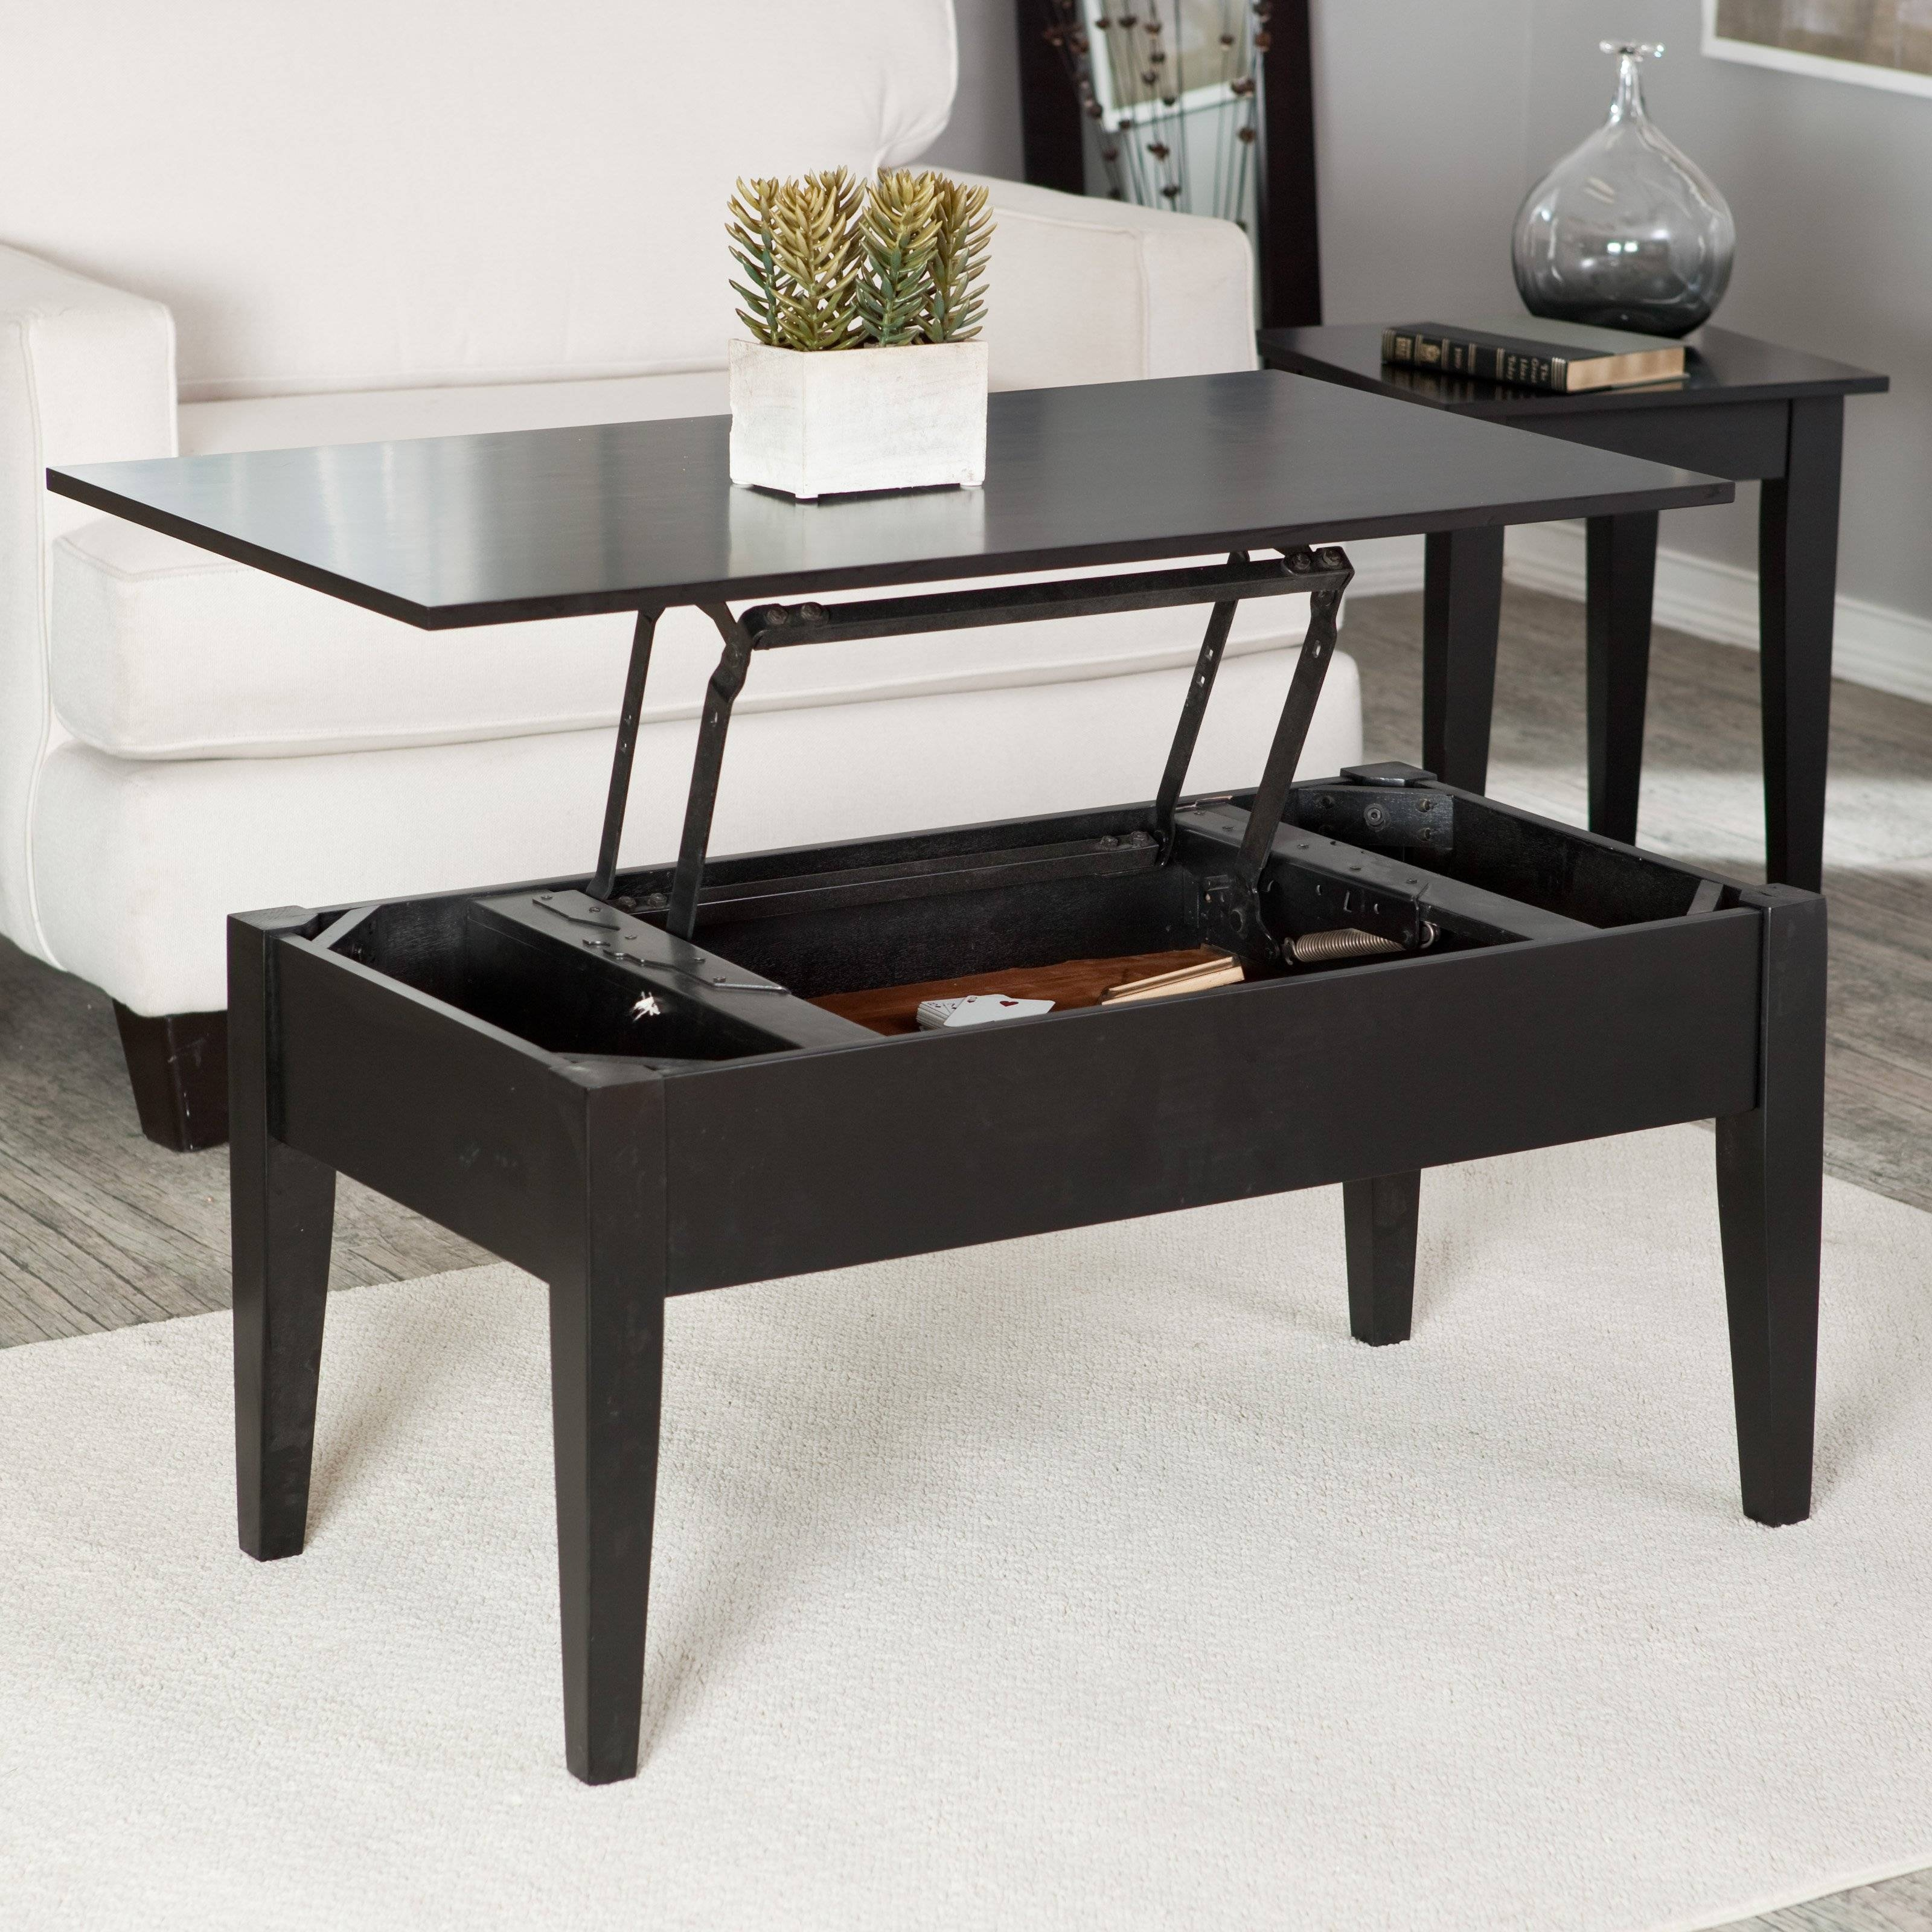 Turner Lift Top Coffee Table - Espresso | Hayneedle regarding Lift Top Coffee Table Furniture (Image 29 of 30)